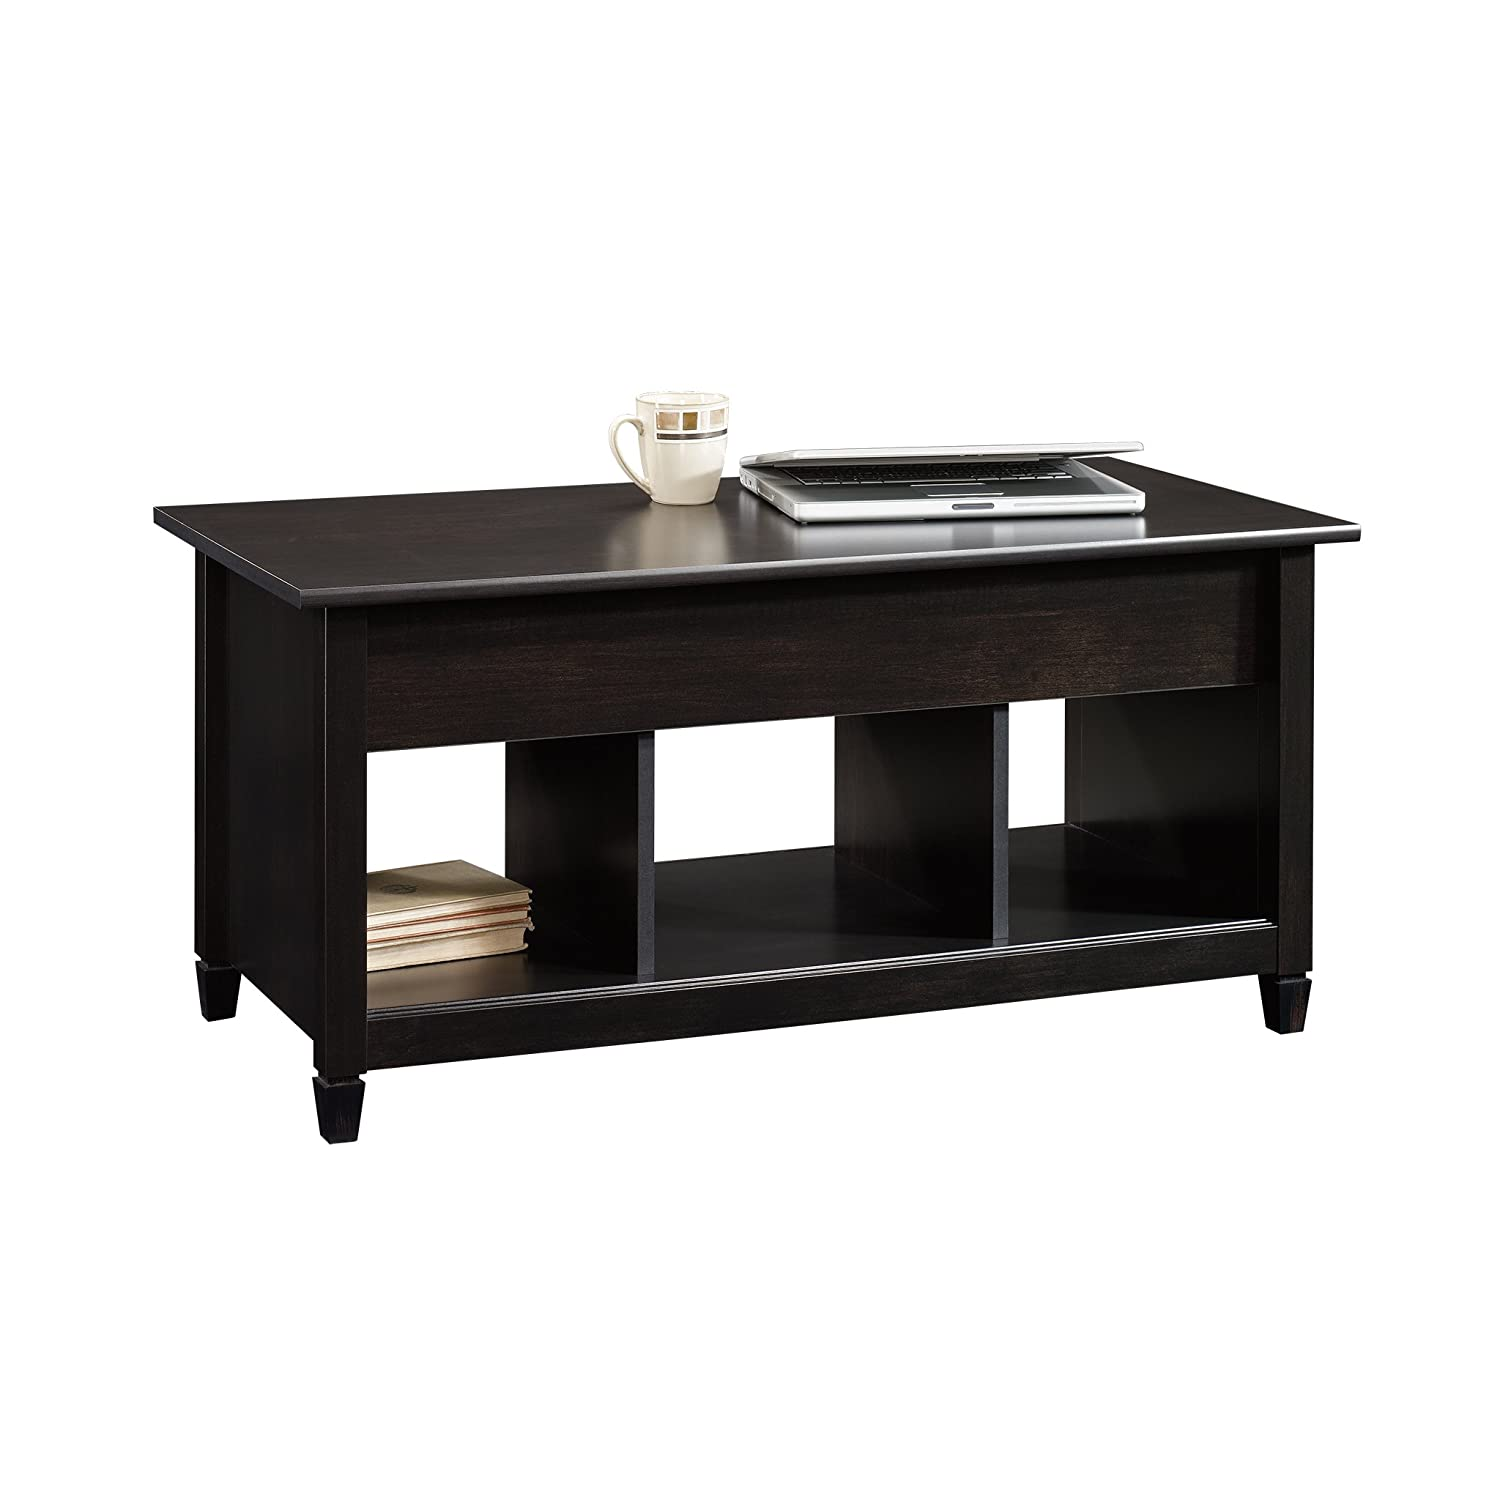 Black and wood coffee table - Amazon Com Sauder Edge Water Lift Top Coffee Table Estate Black Finish Kitchen Dining